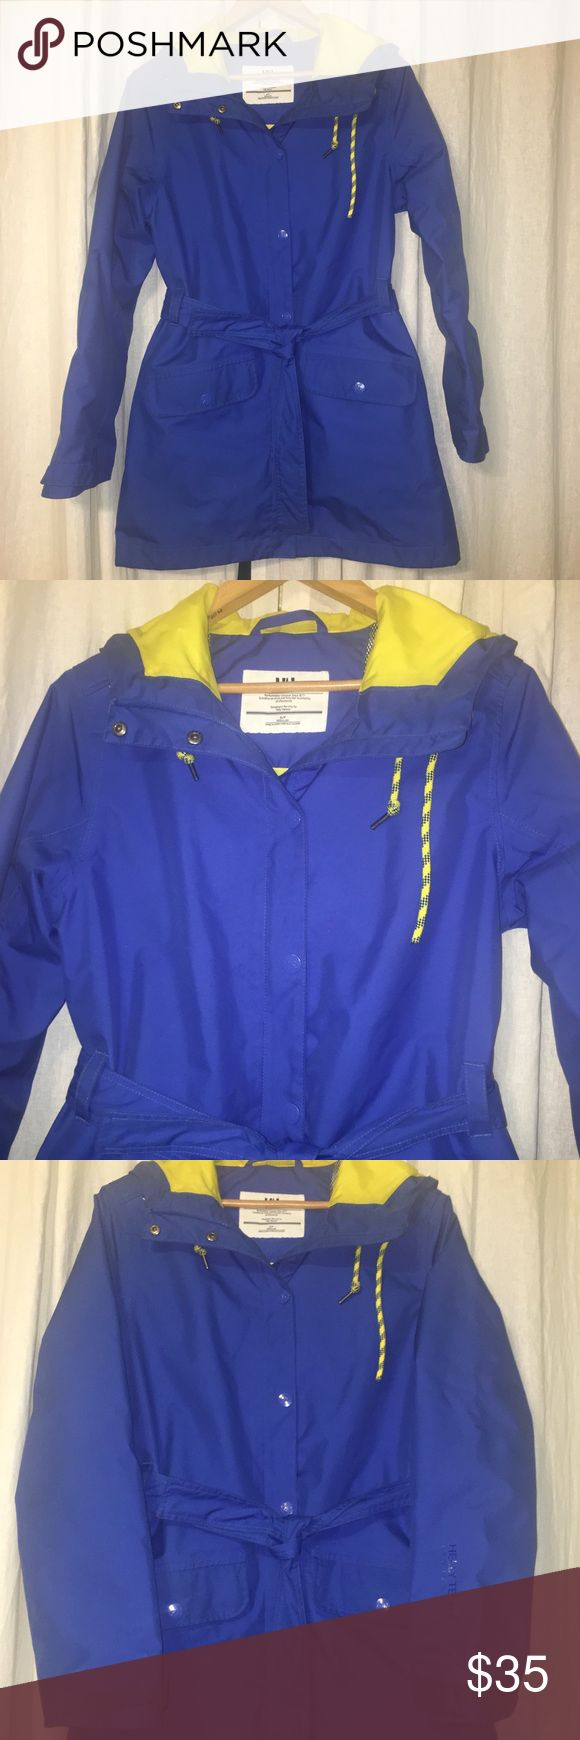 Helly Hansen Raincoat with Flaws - Sz Small 🌟🌟Please Read🌟🌟 This jacket is in pre-owned condition with signs of wear. There are dirt/stains throughout the coat. Most of the wear is on the pockets, sleeves and bottom of the jacket. The dirt/stains will need a good cleaning or may be worn as-is for running around town.  Please message with any questions. This jacket is being sold as-is and at a low because of the dirt/stains. @Broken hood cord@. This jacket is not for everyone but still…